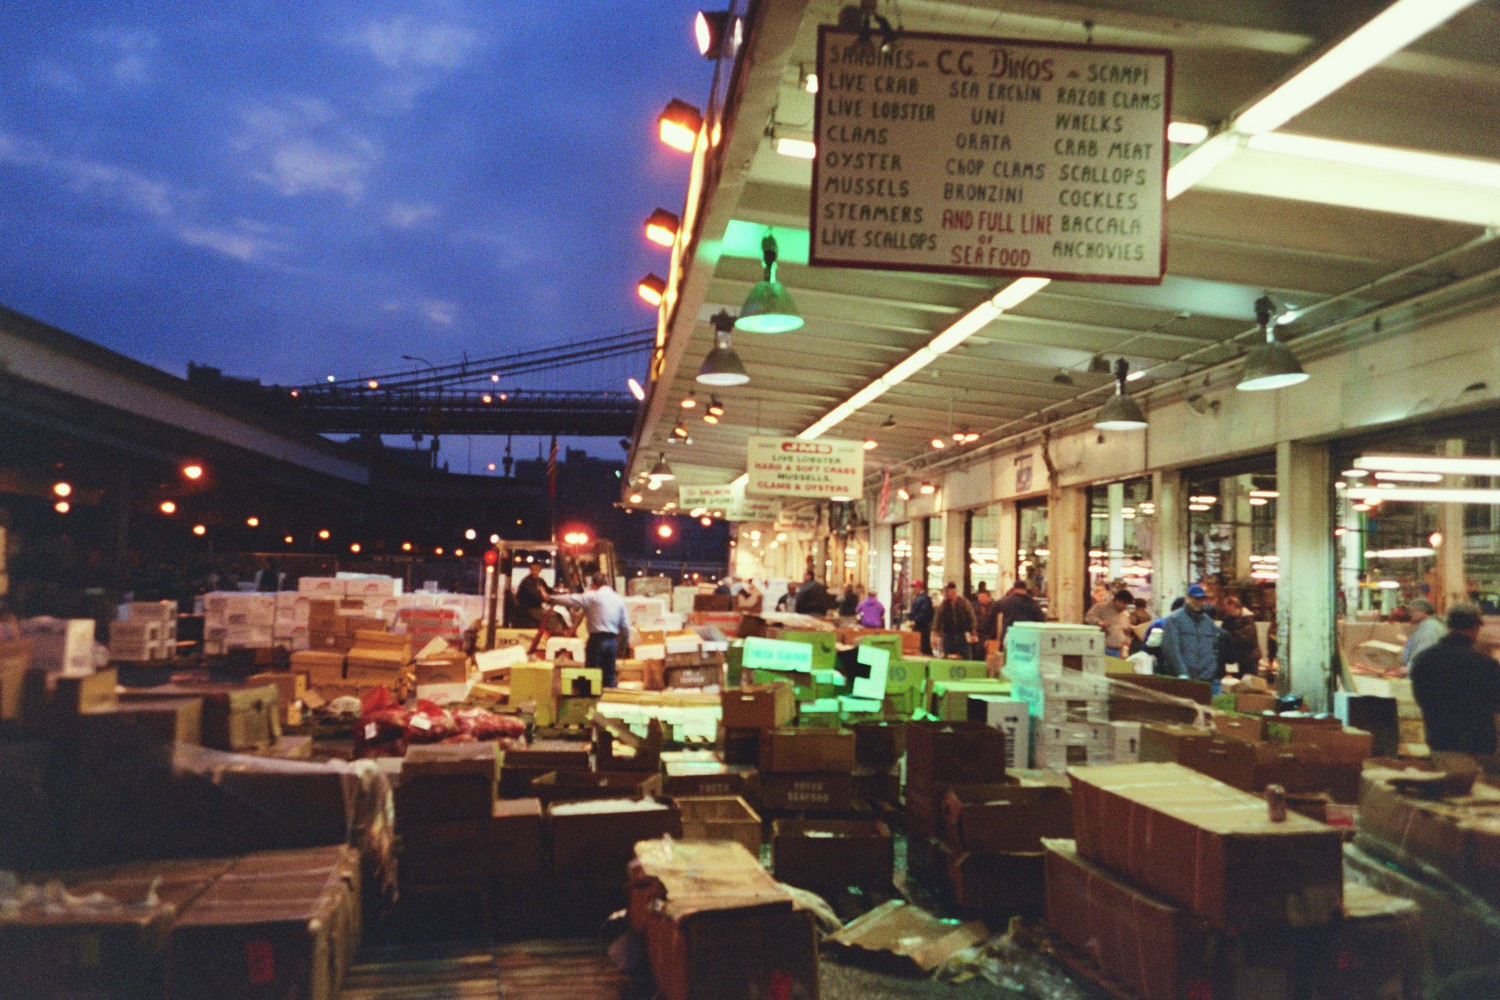 Archideology fulton fish market south street seaport for Fulton fish market online